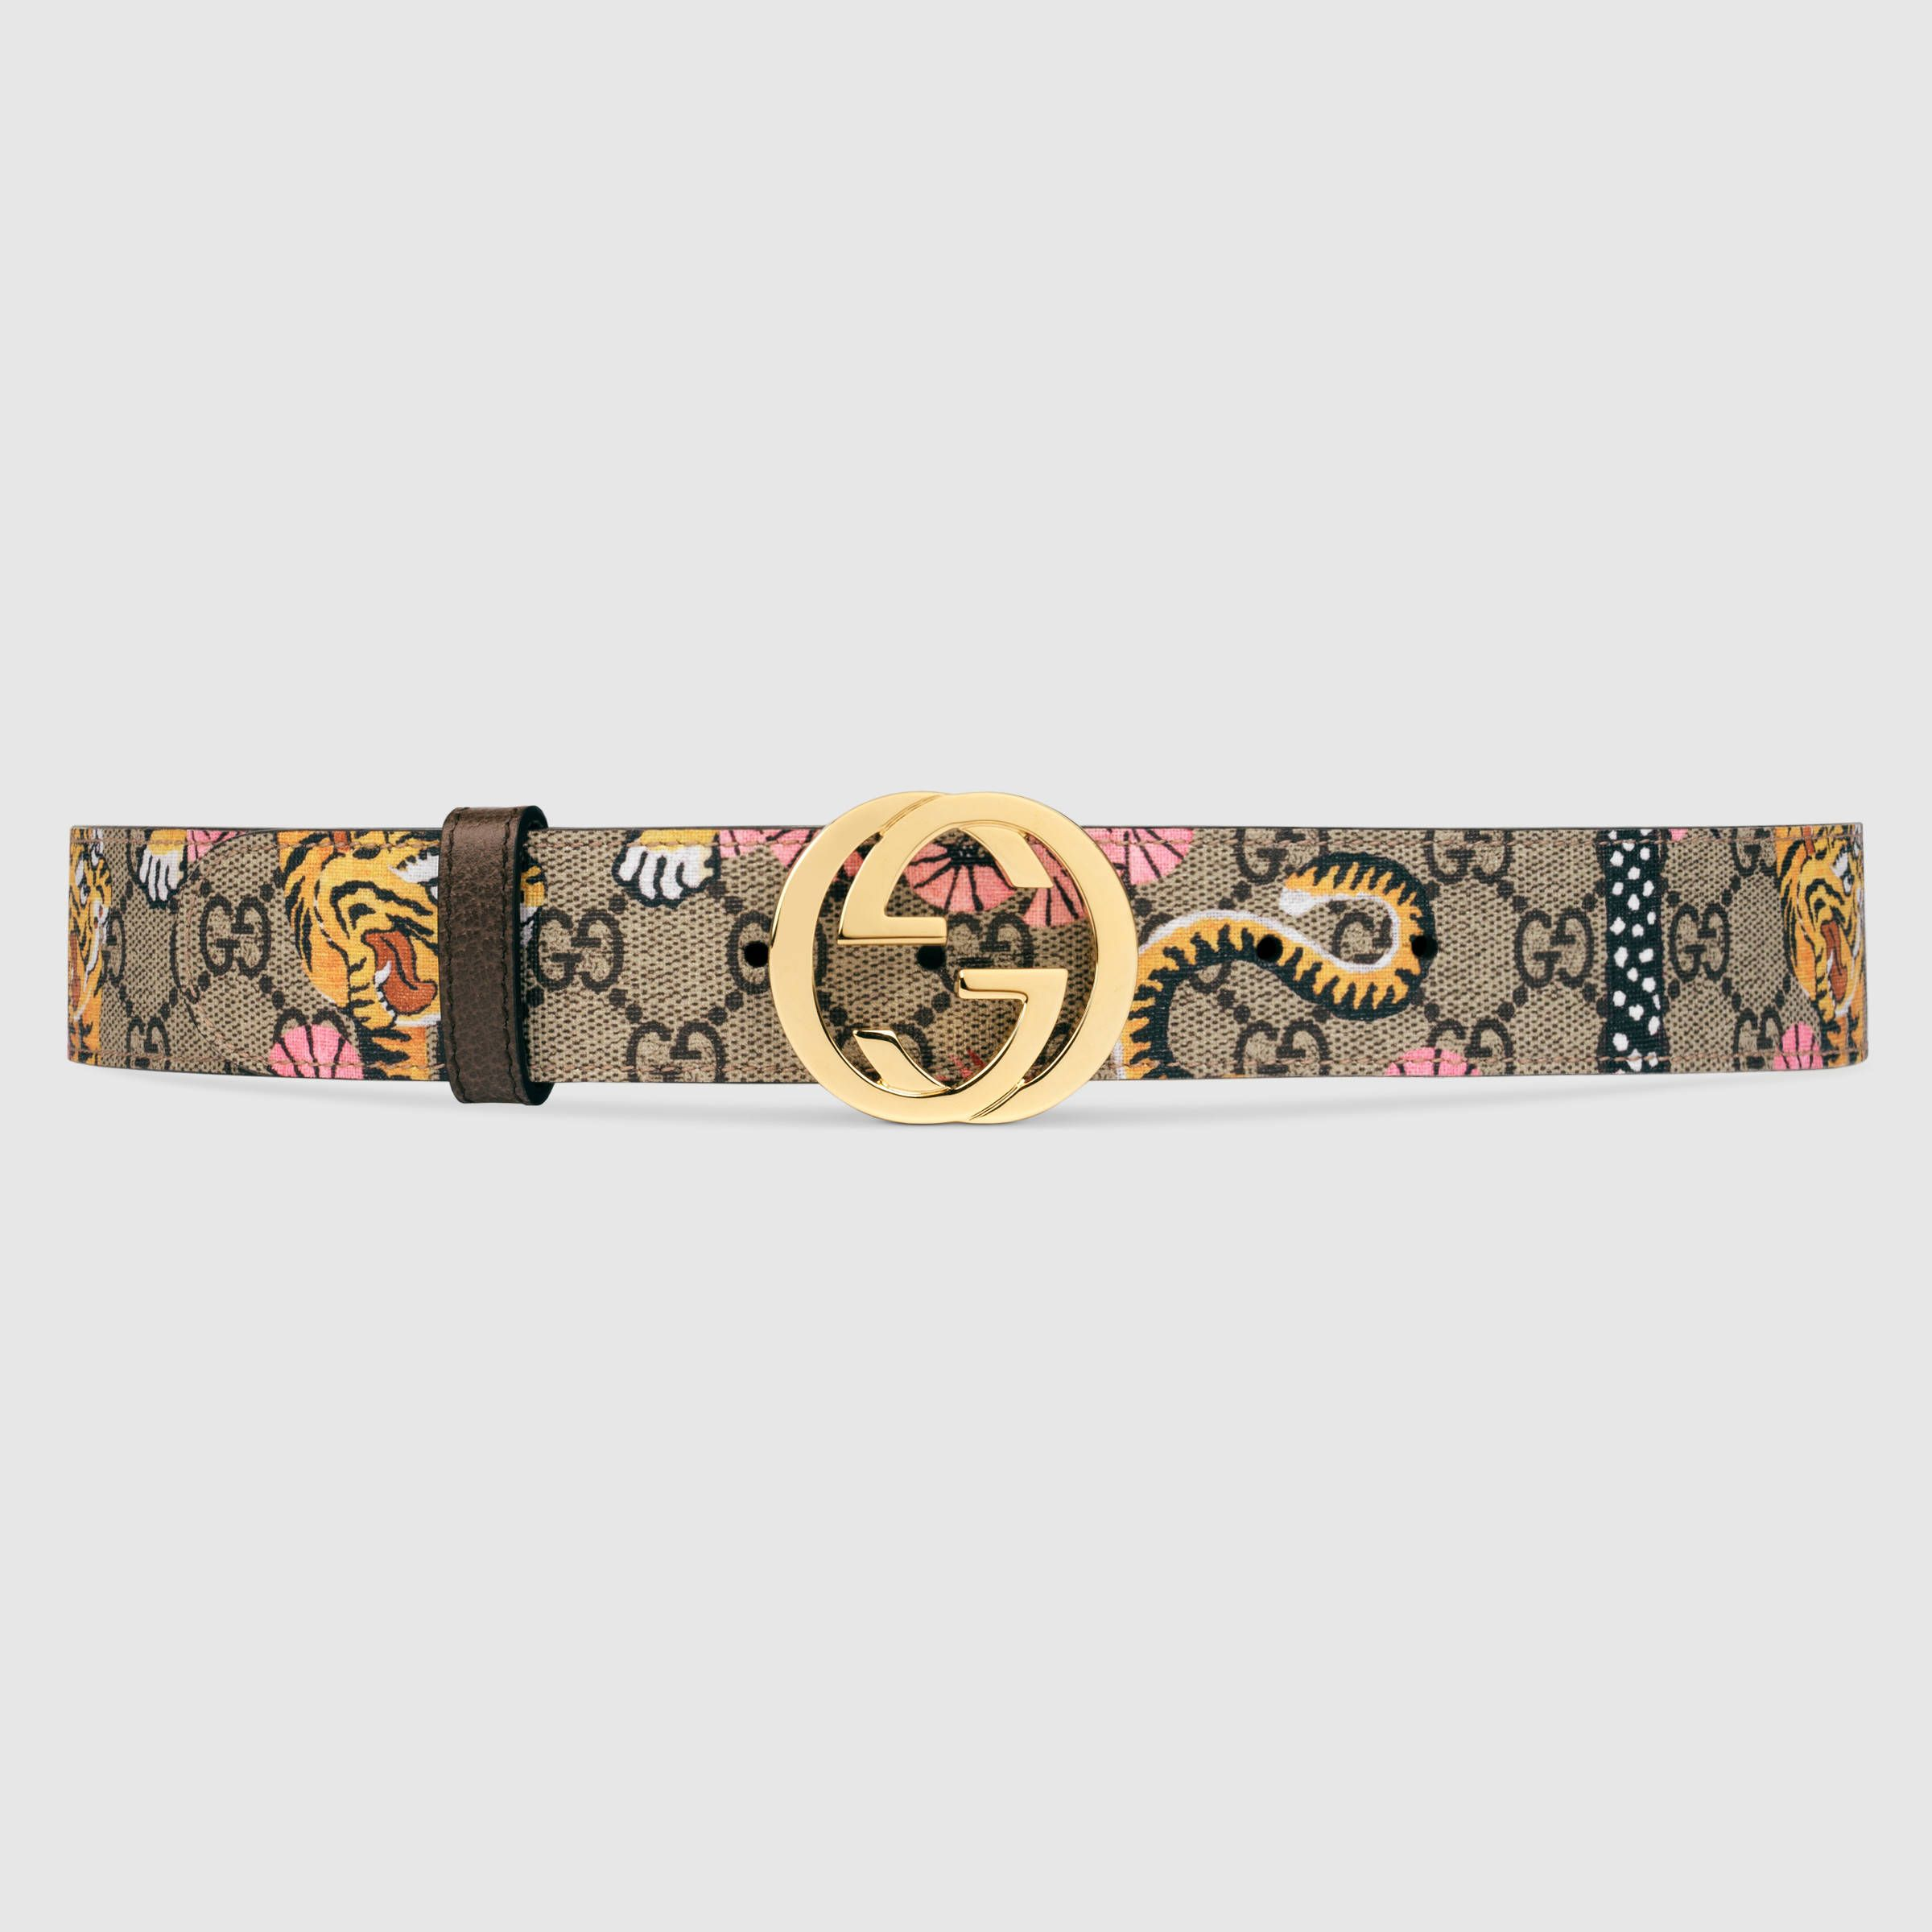 4089b393b Gucci bengal belt $370 | Objects of Desire | Gucci, Belt, Belts for ...